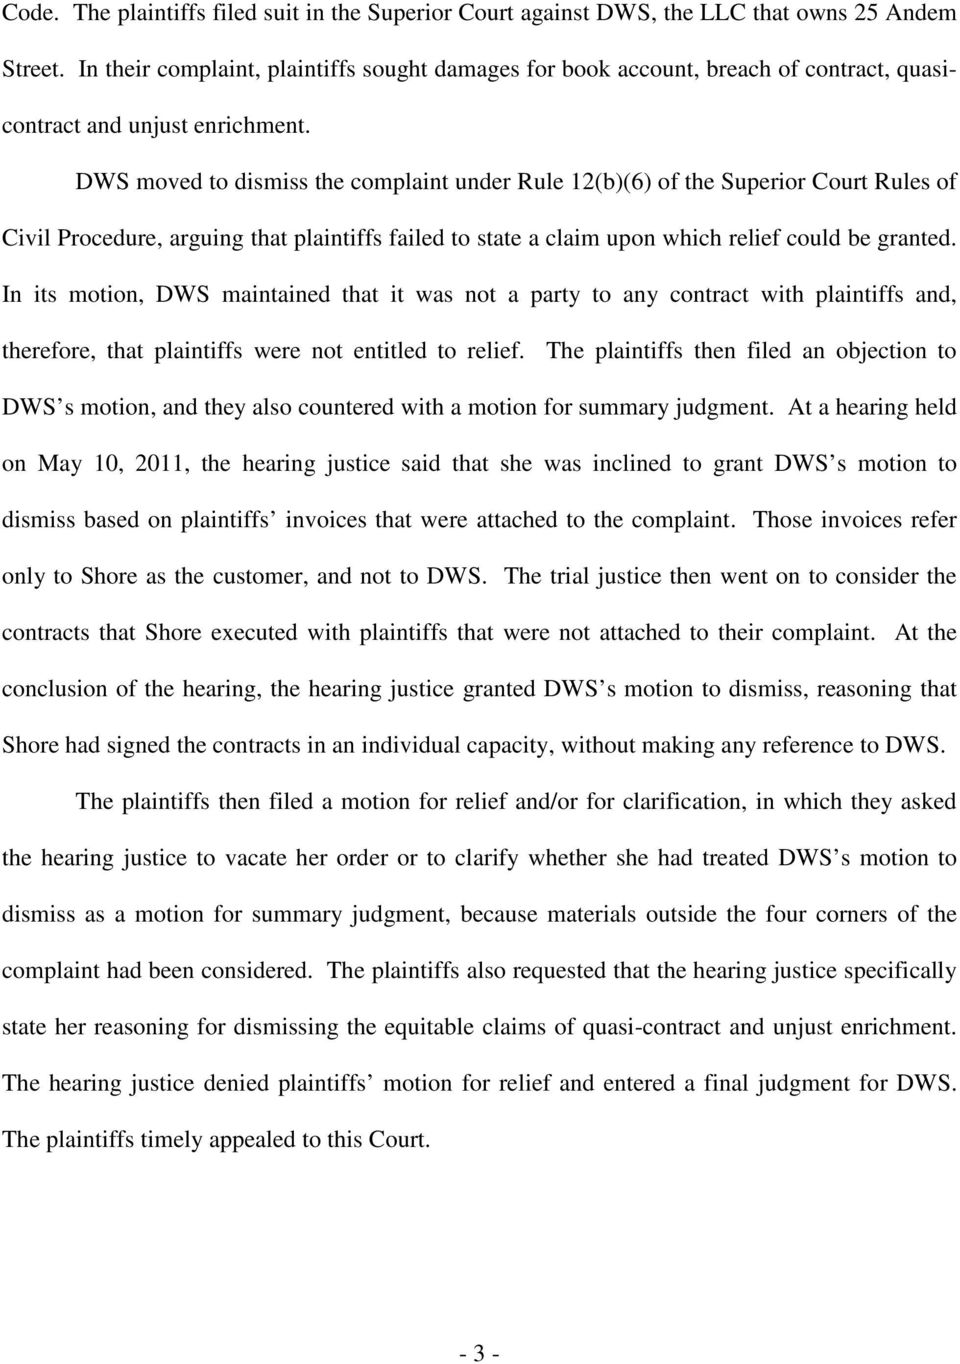 DWS moved to dismiss the complaint under Rule 12(b)(6) of the Superior Court Rules of Civil Procedure, arguing that plaintiffs failed to state a claim upon which relief could be granted.